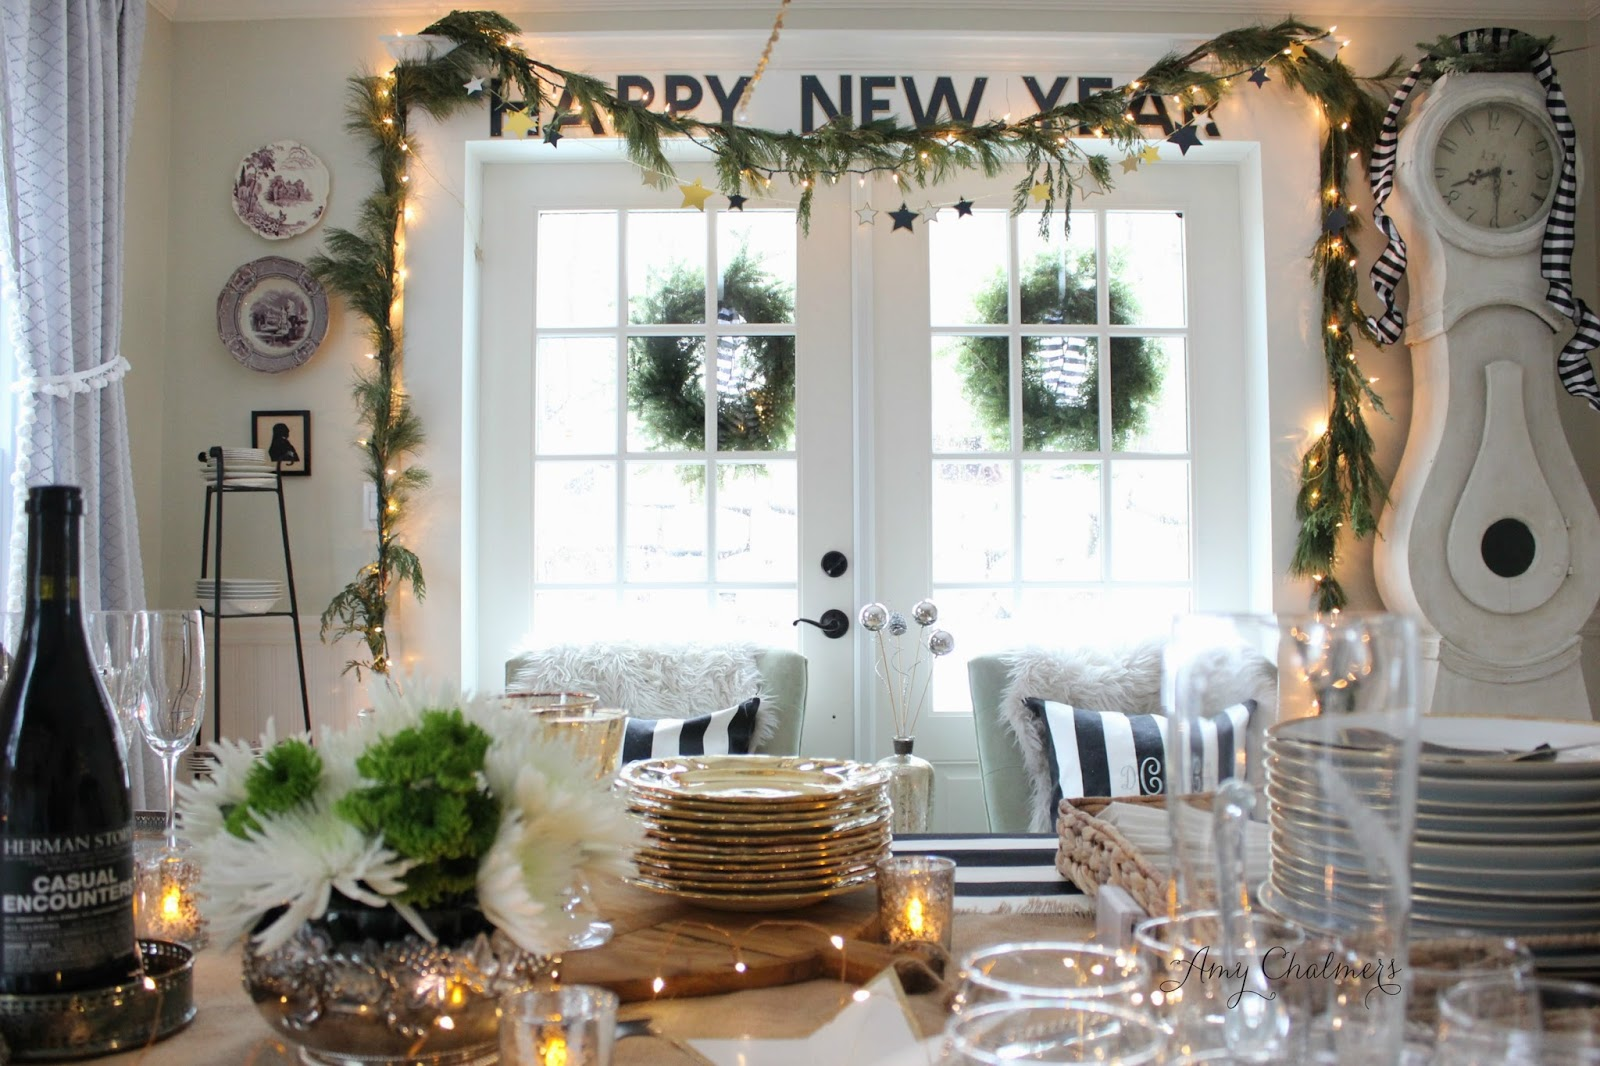 Maison Deco Of Maison Decor A Glittery New Years Eve Affair